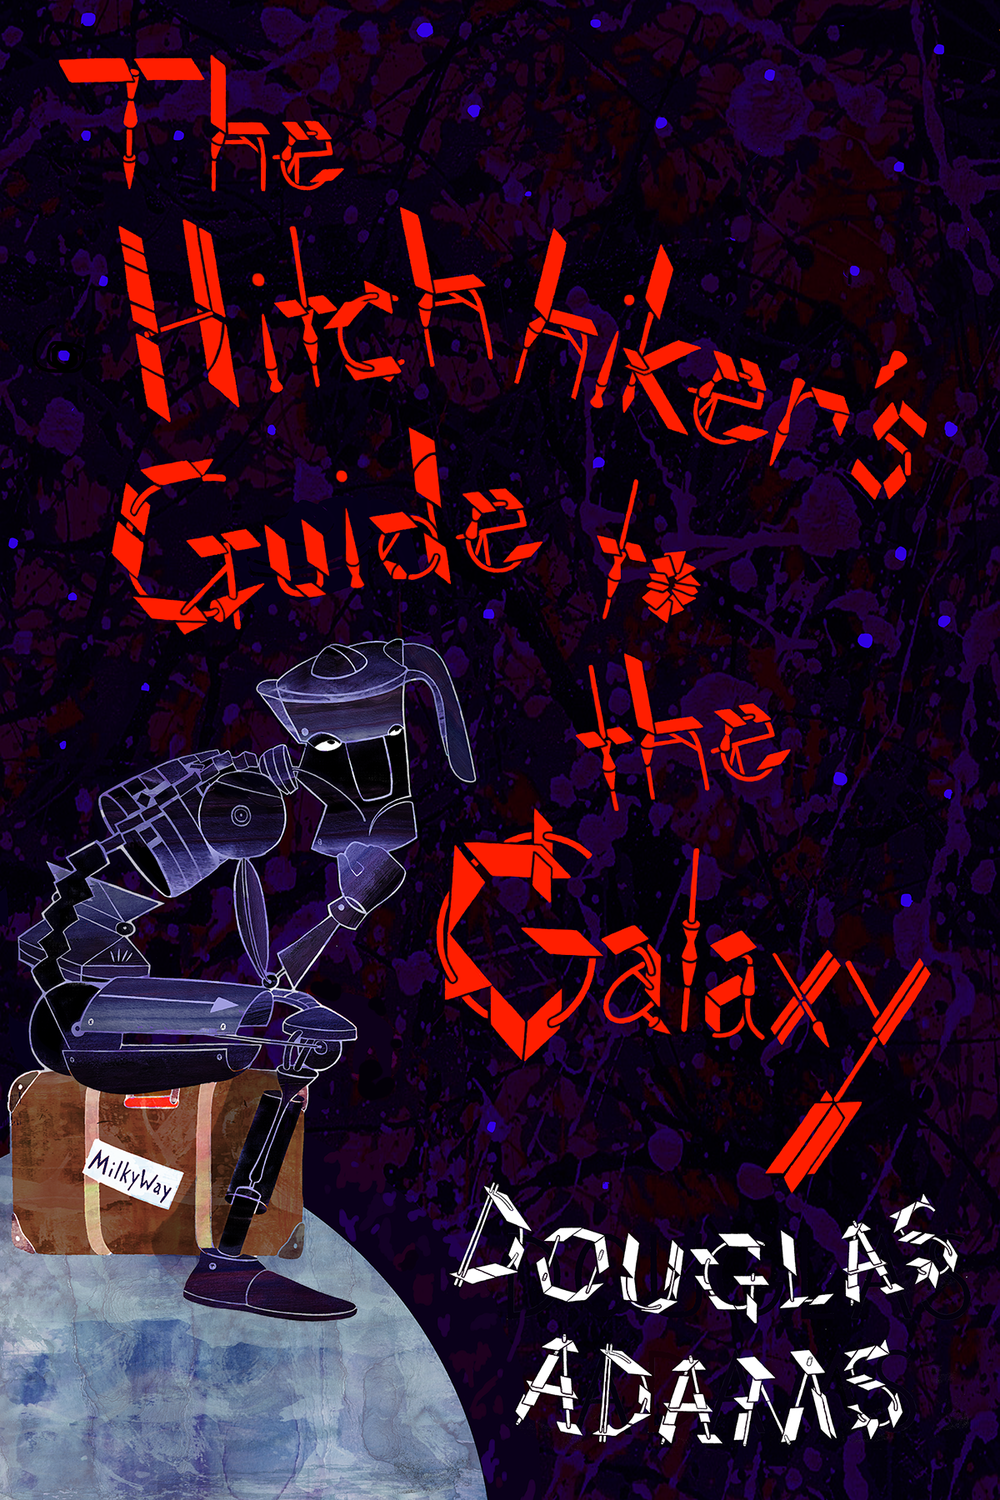 hitchhikersguide_6x9.png